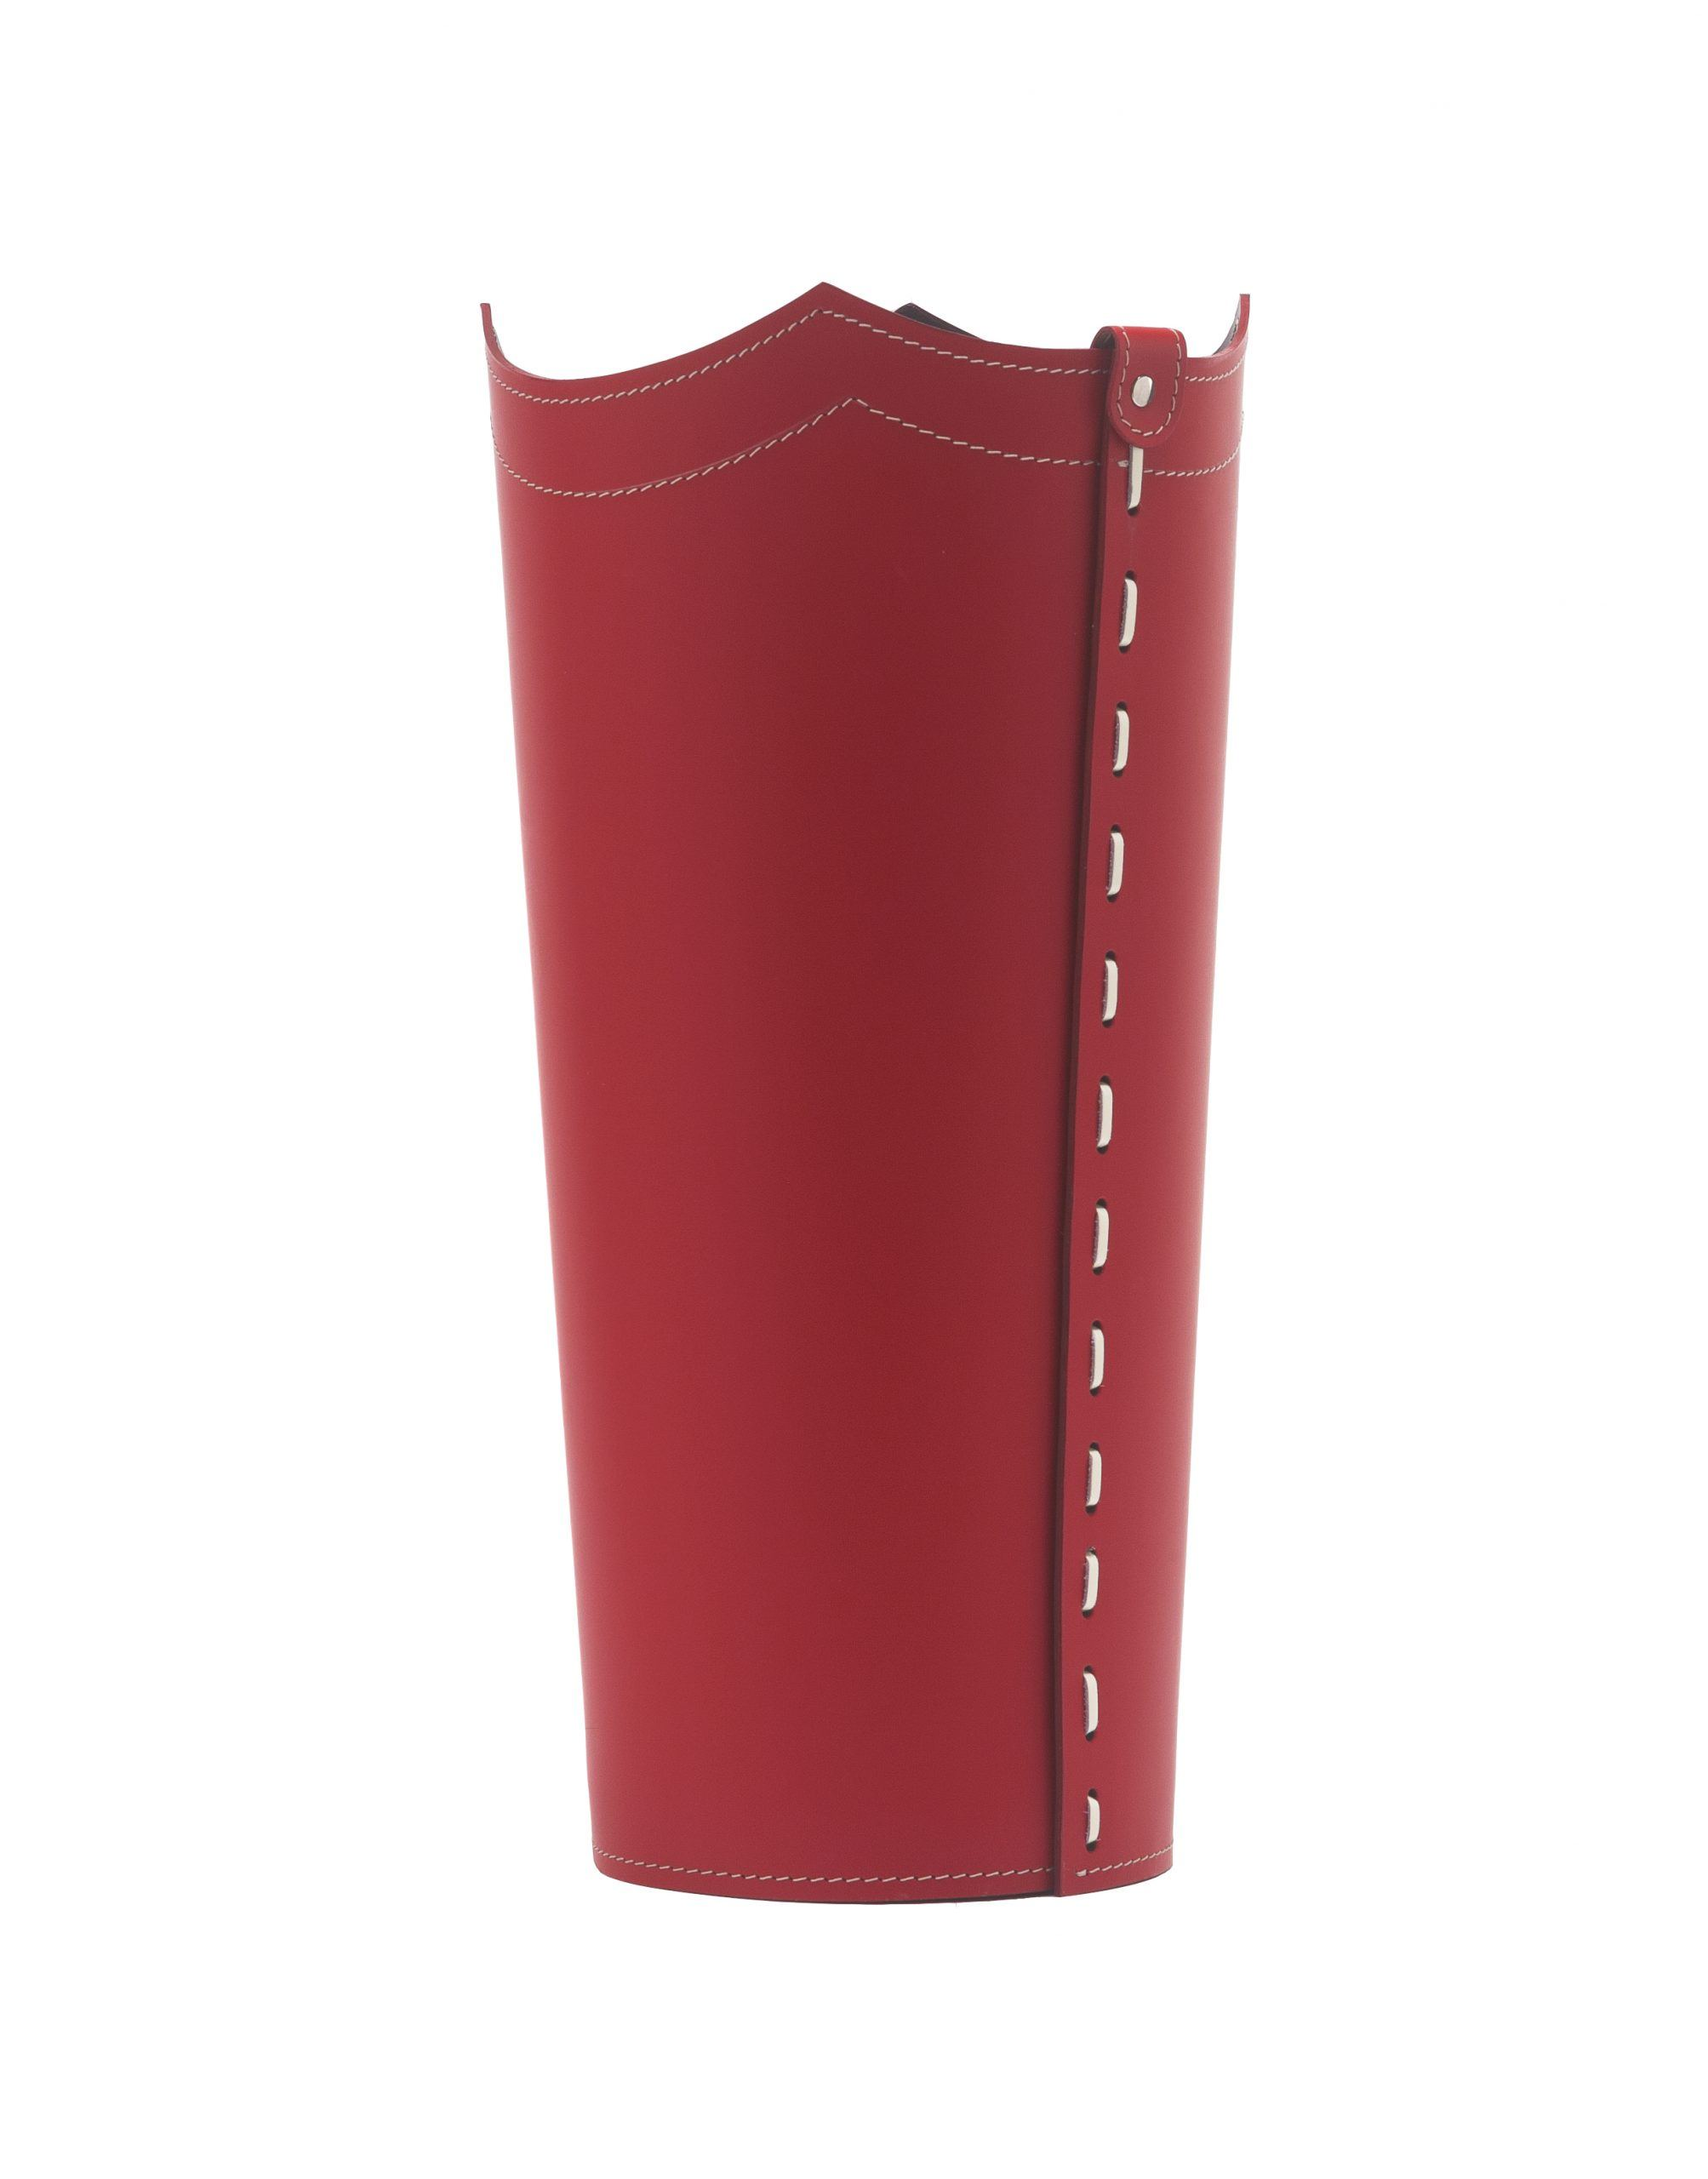 Umbrella Stand In Leather Red Colour